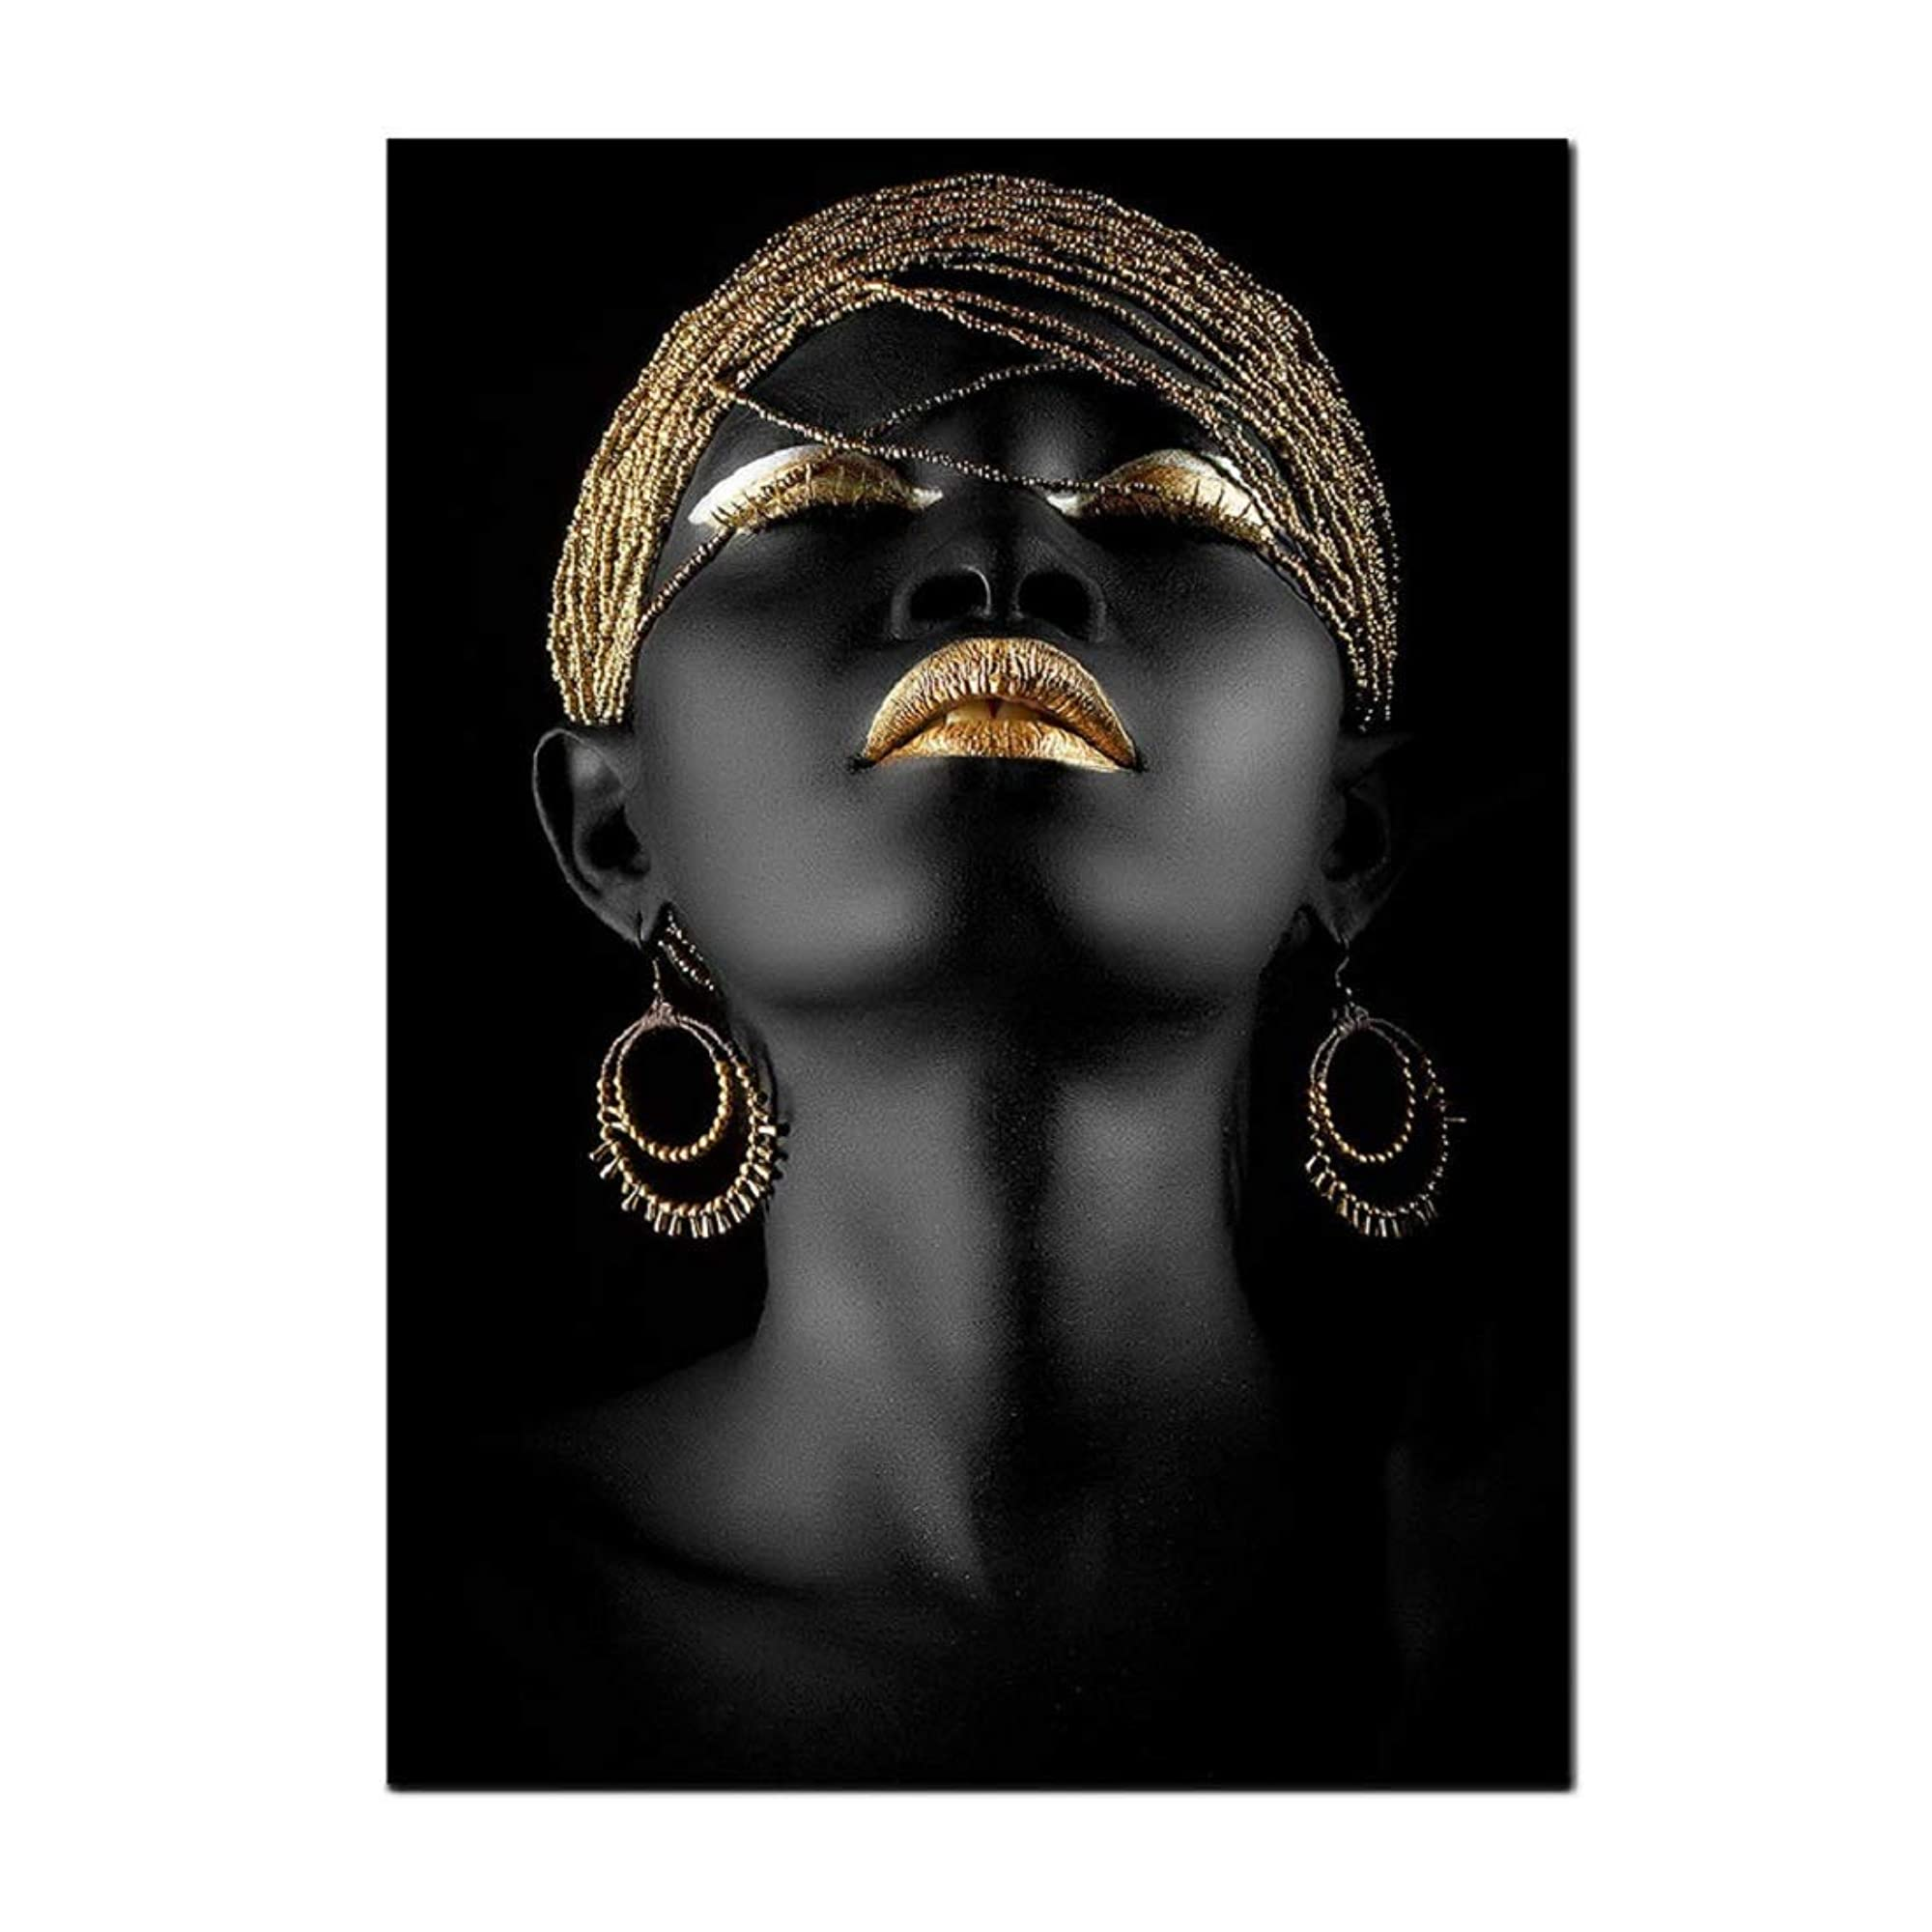 Black Woman Portrait Photography Wall Art Posters